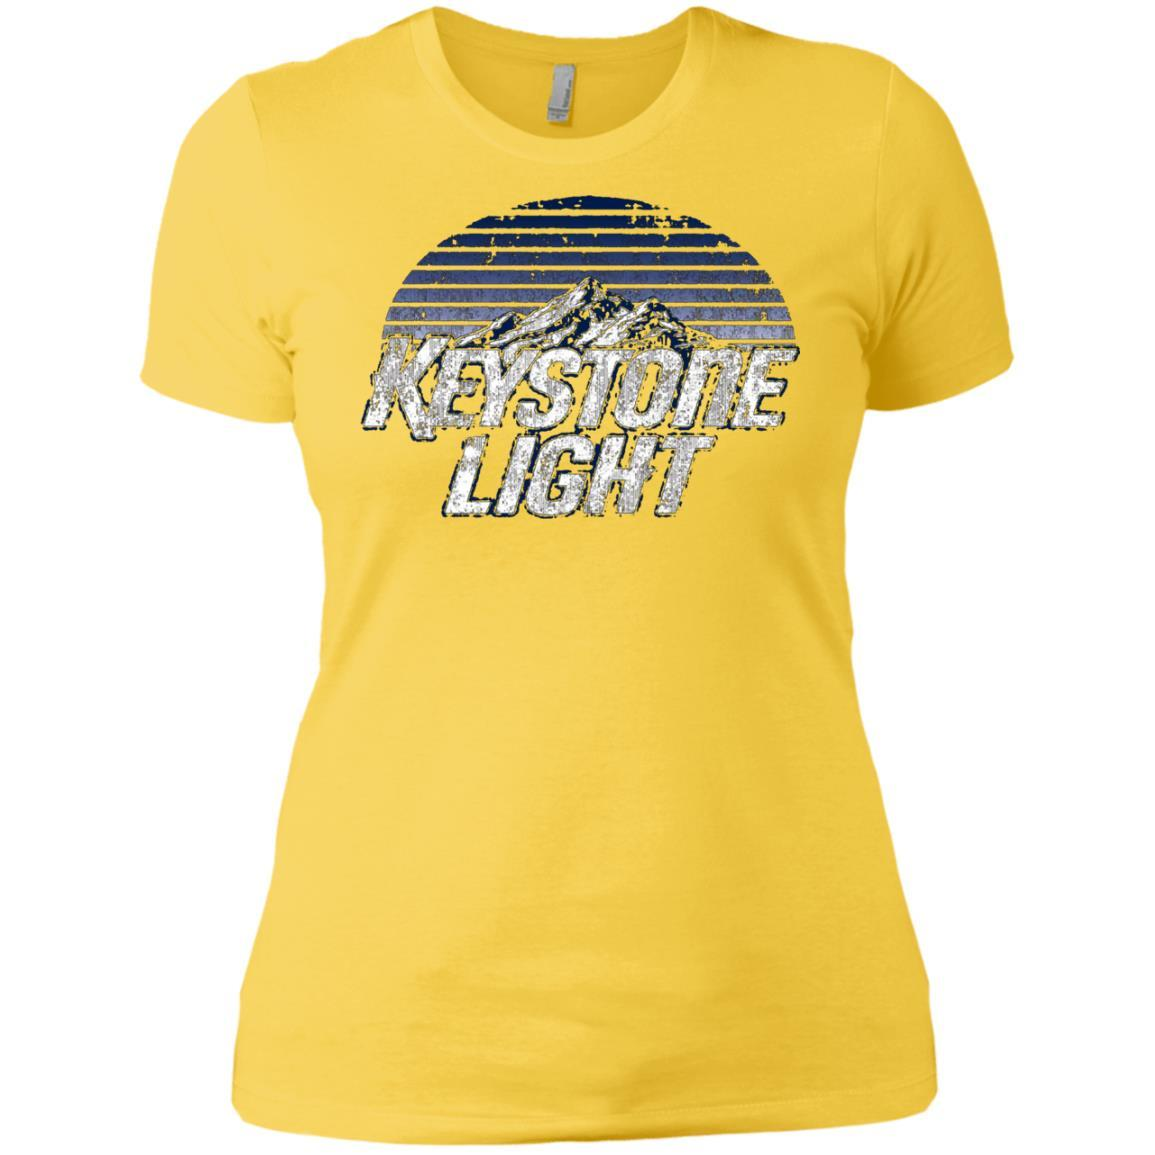 Keystone Light Beer Classic Look - Ladies' Boyfriend T-Shirt Style / Color / Size